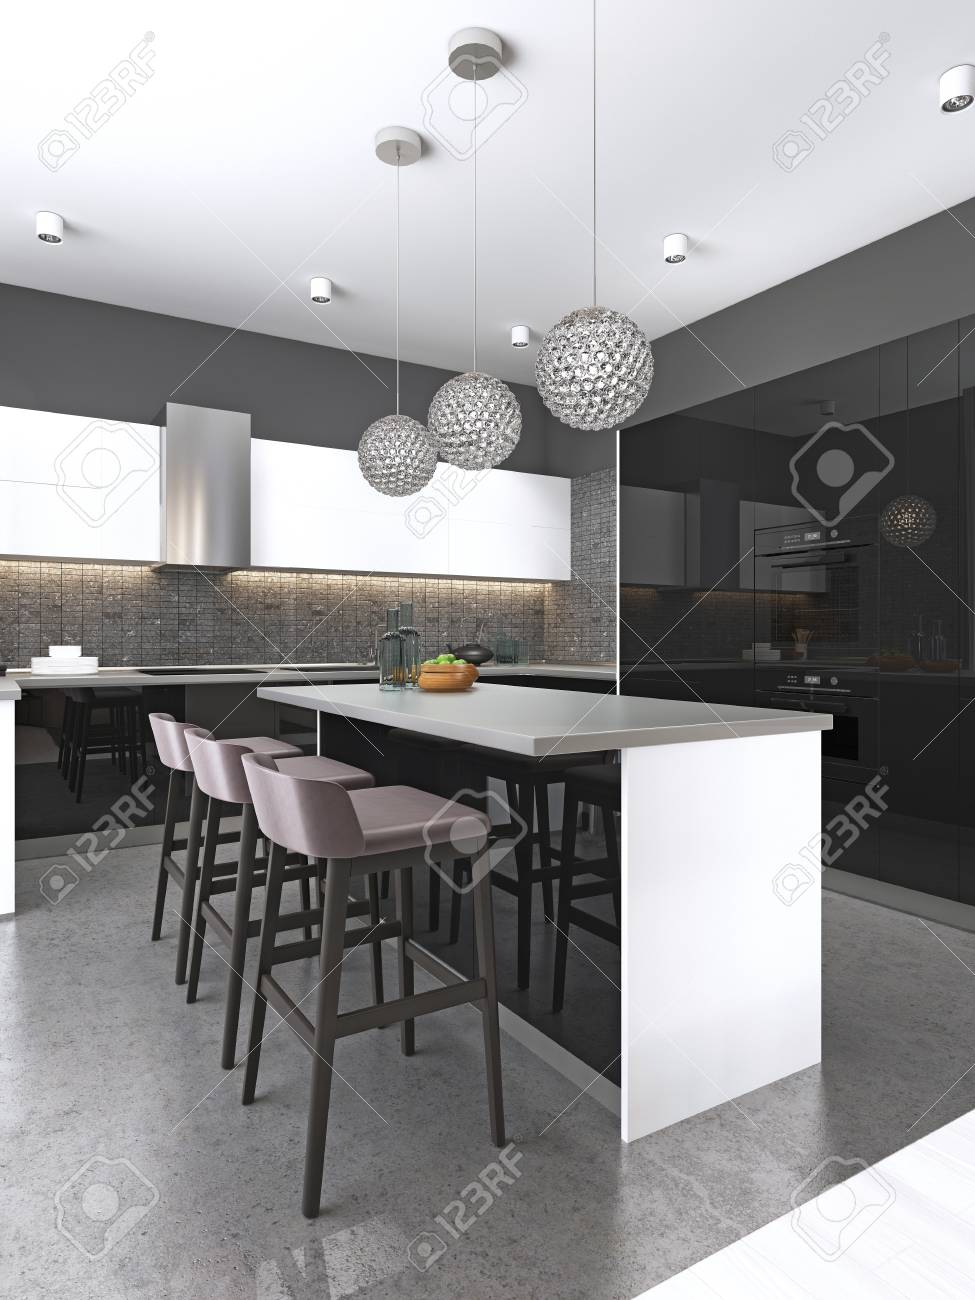 Kitchen Island With Three Bar Stools And Round Glass Chandeliers Stock Photo Picture And Royalty Free Image Image 113376602